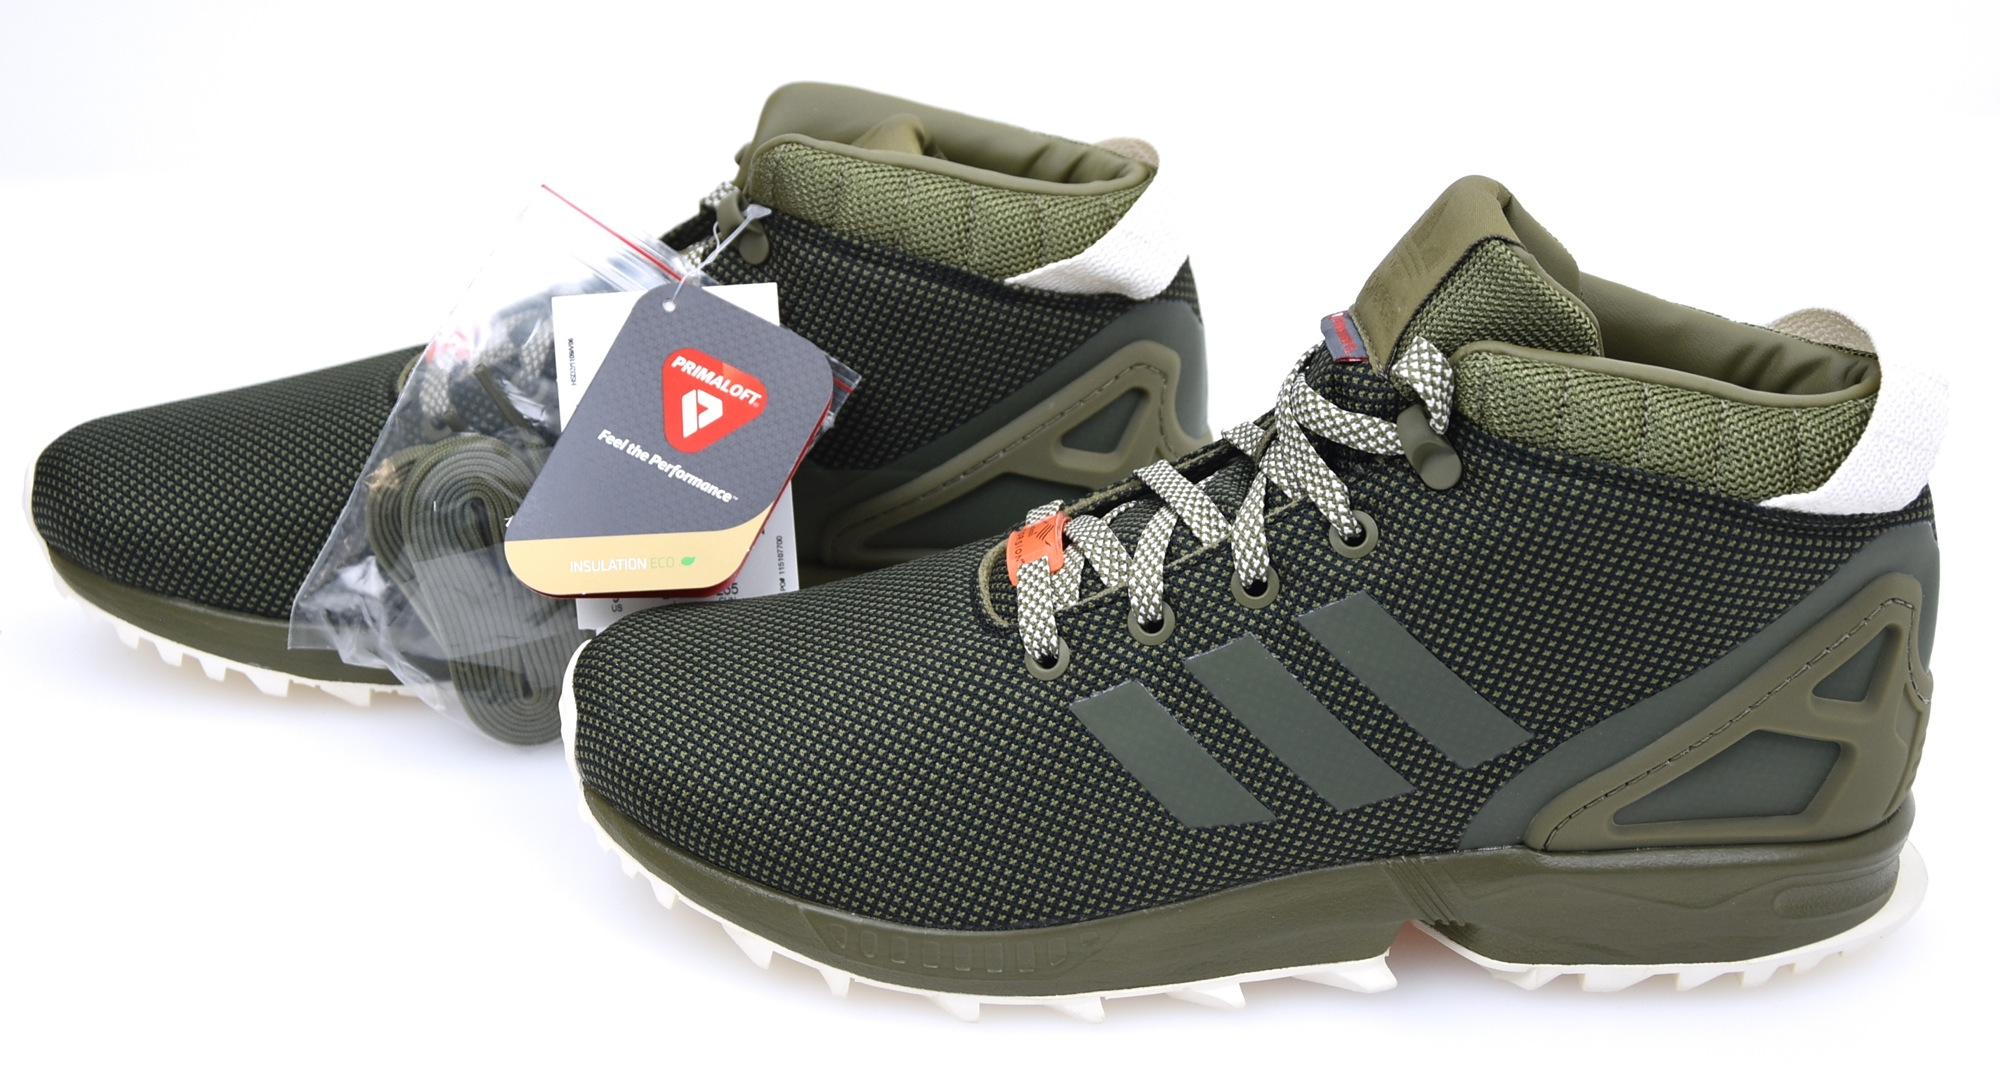 ADIDAS MAN SPORTS SNEAKER SHOES SYNTHETIC CODE ZX FLUX 5 8 TR S79742 -  S79741 7b22bc6a3